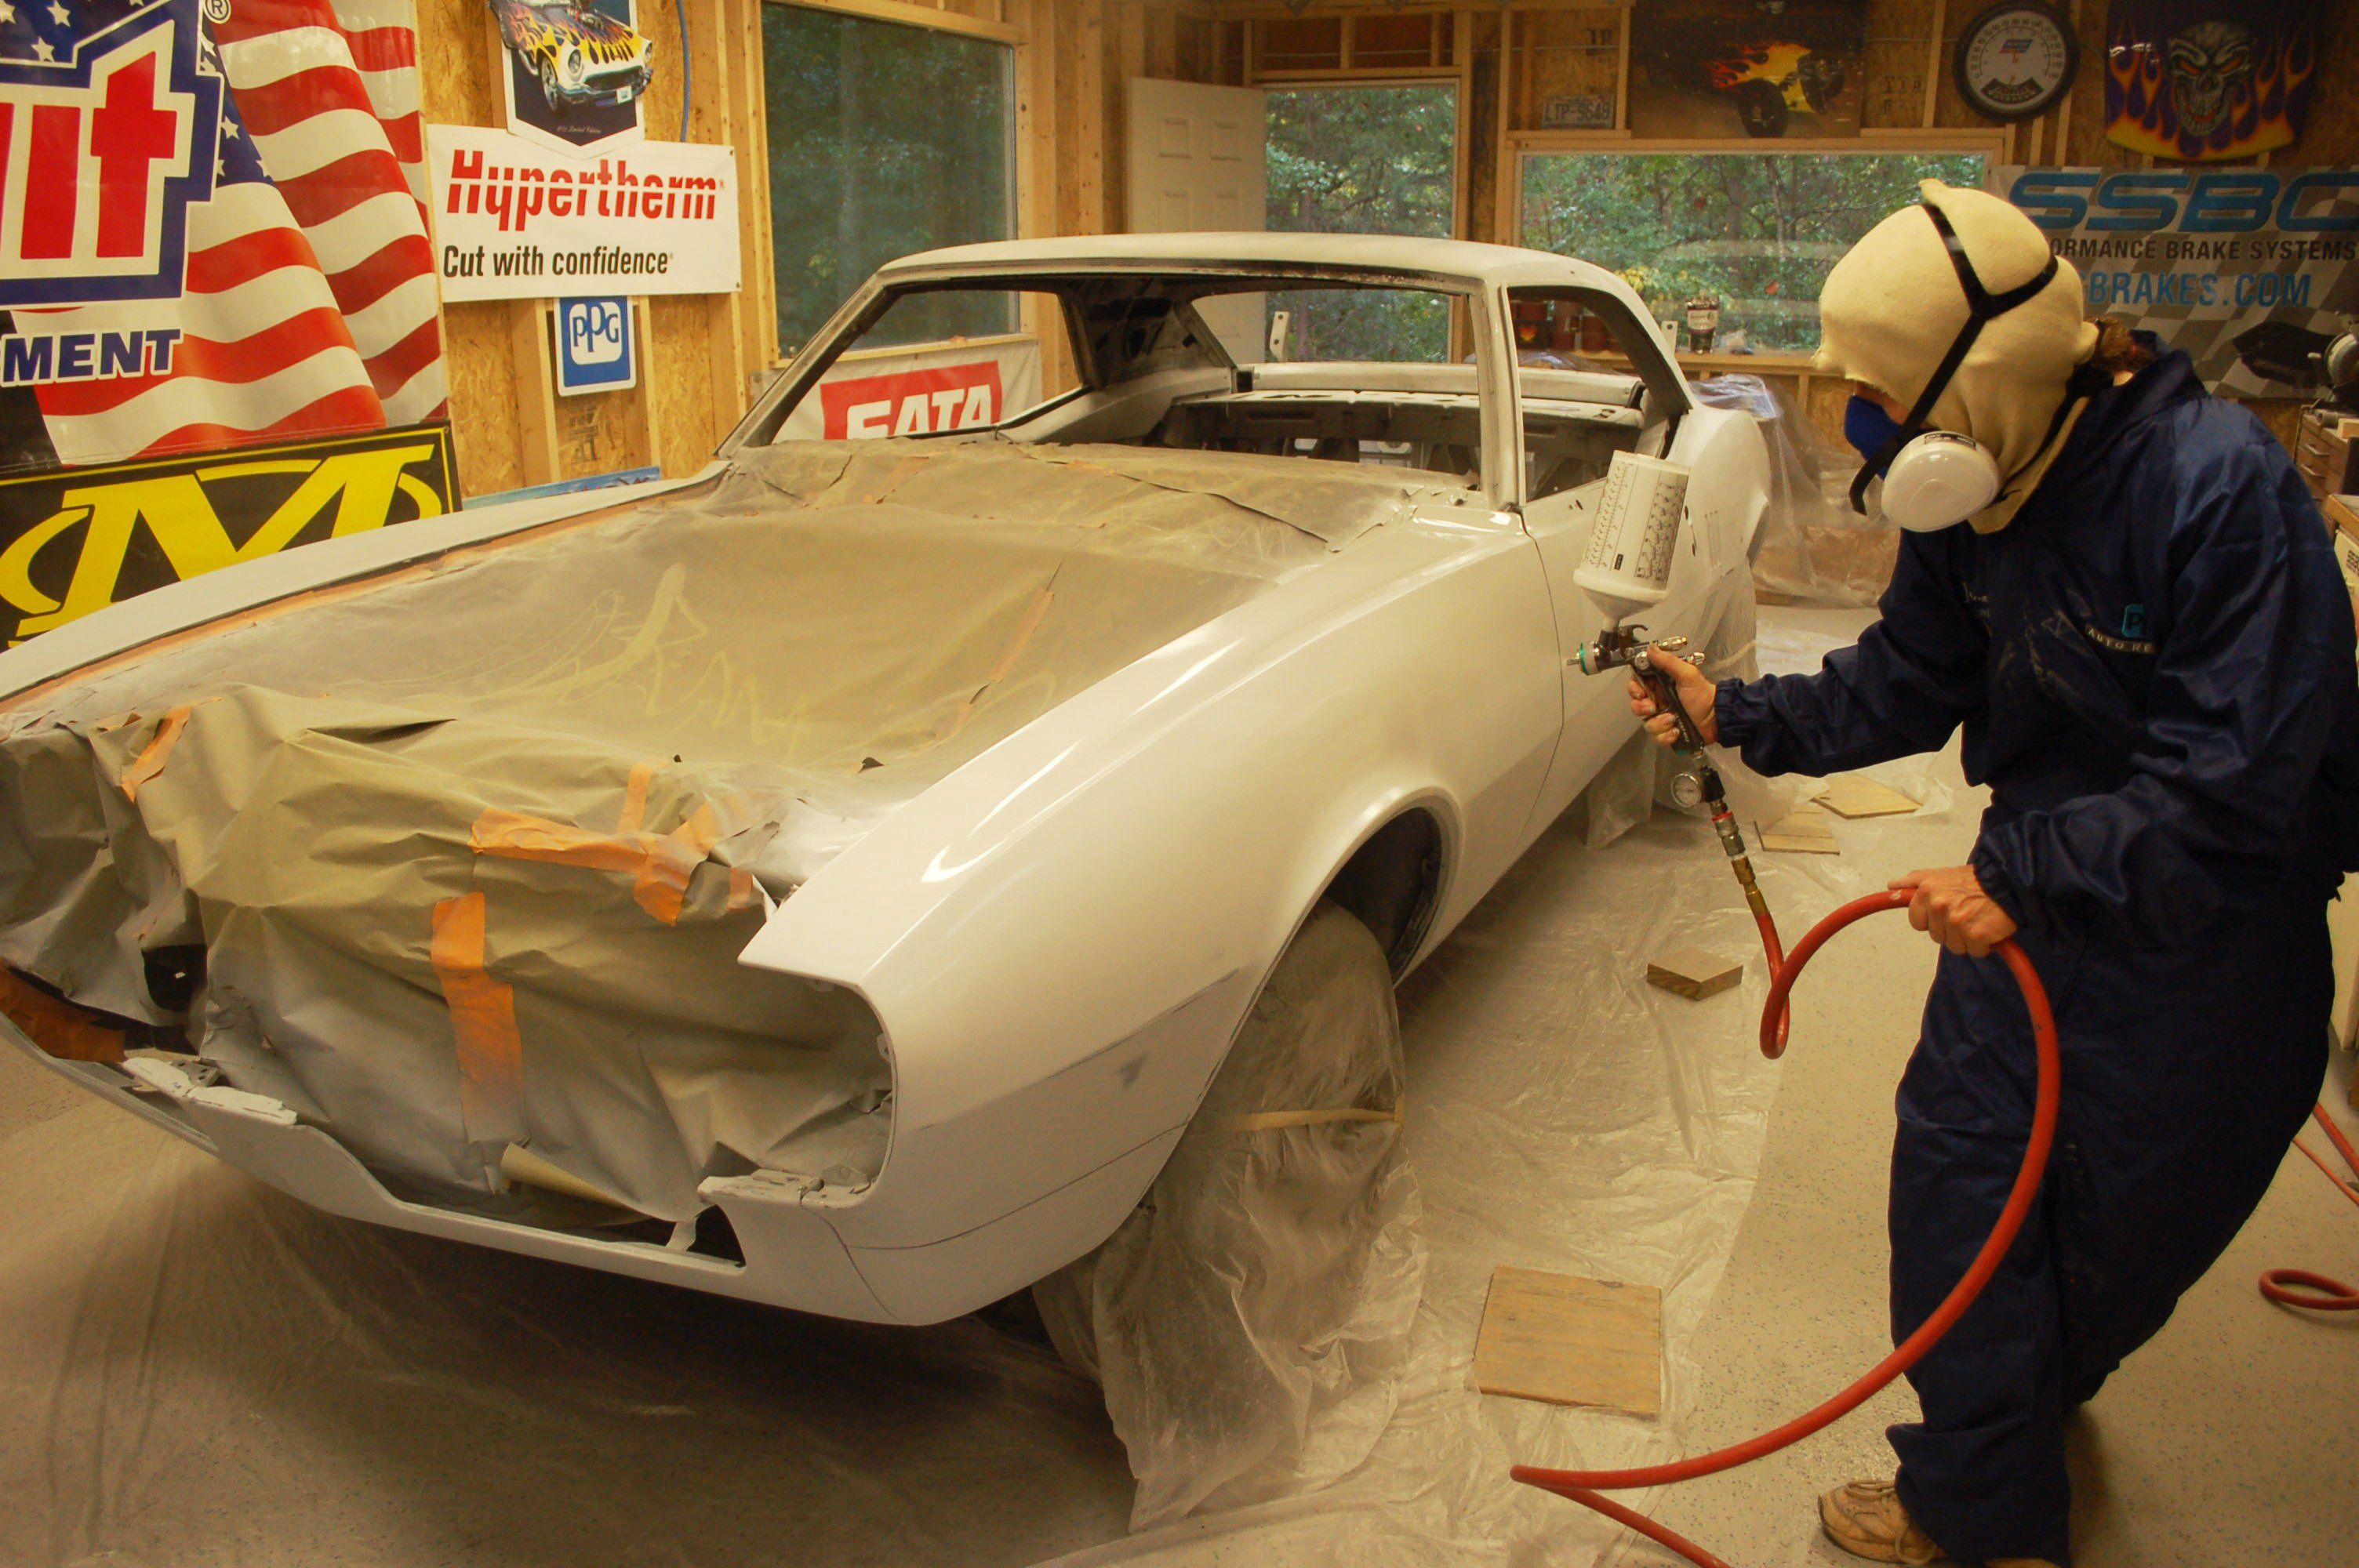 Automotive Primer And Sealer Products Can Make Or Break A Paintjob Find Out The Do S And Don Ts Of Properly Sealing A Car For P Car Painting Car Cool Pictures